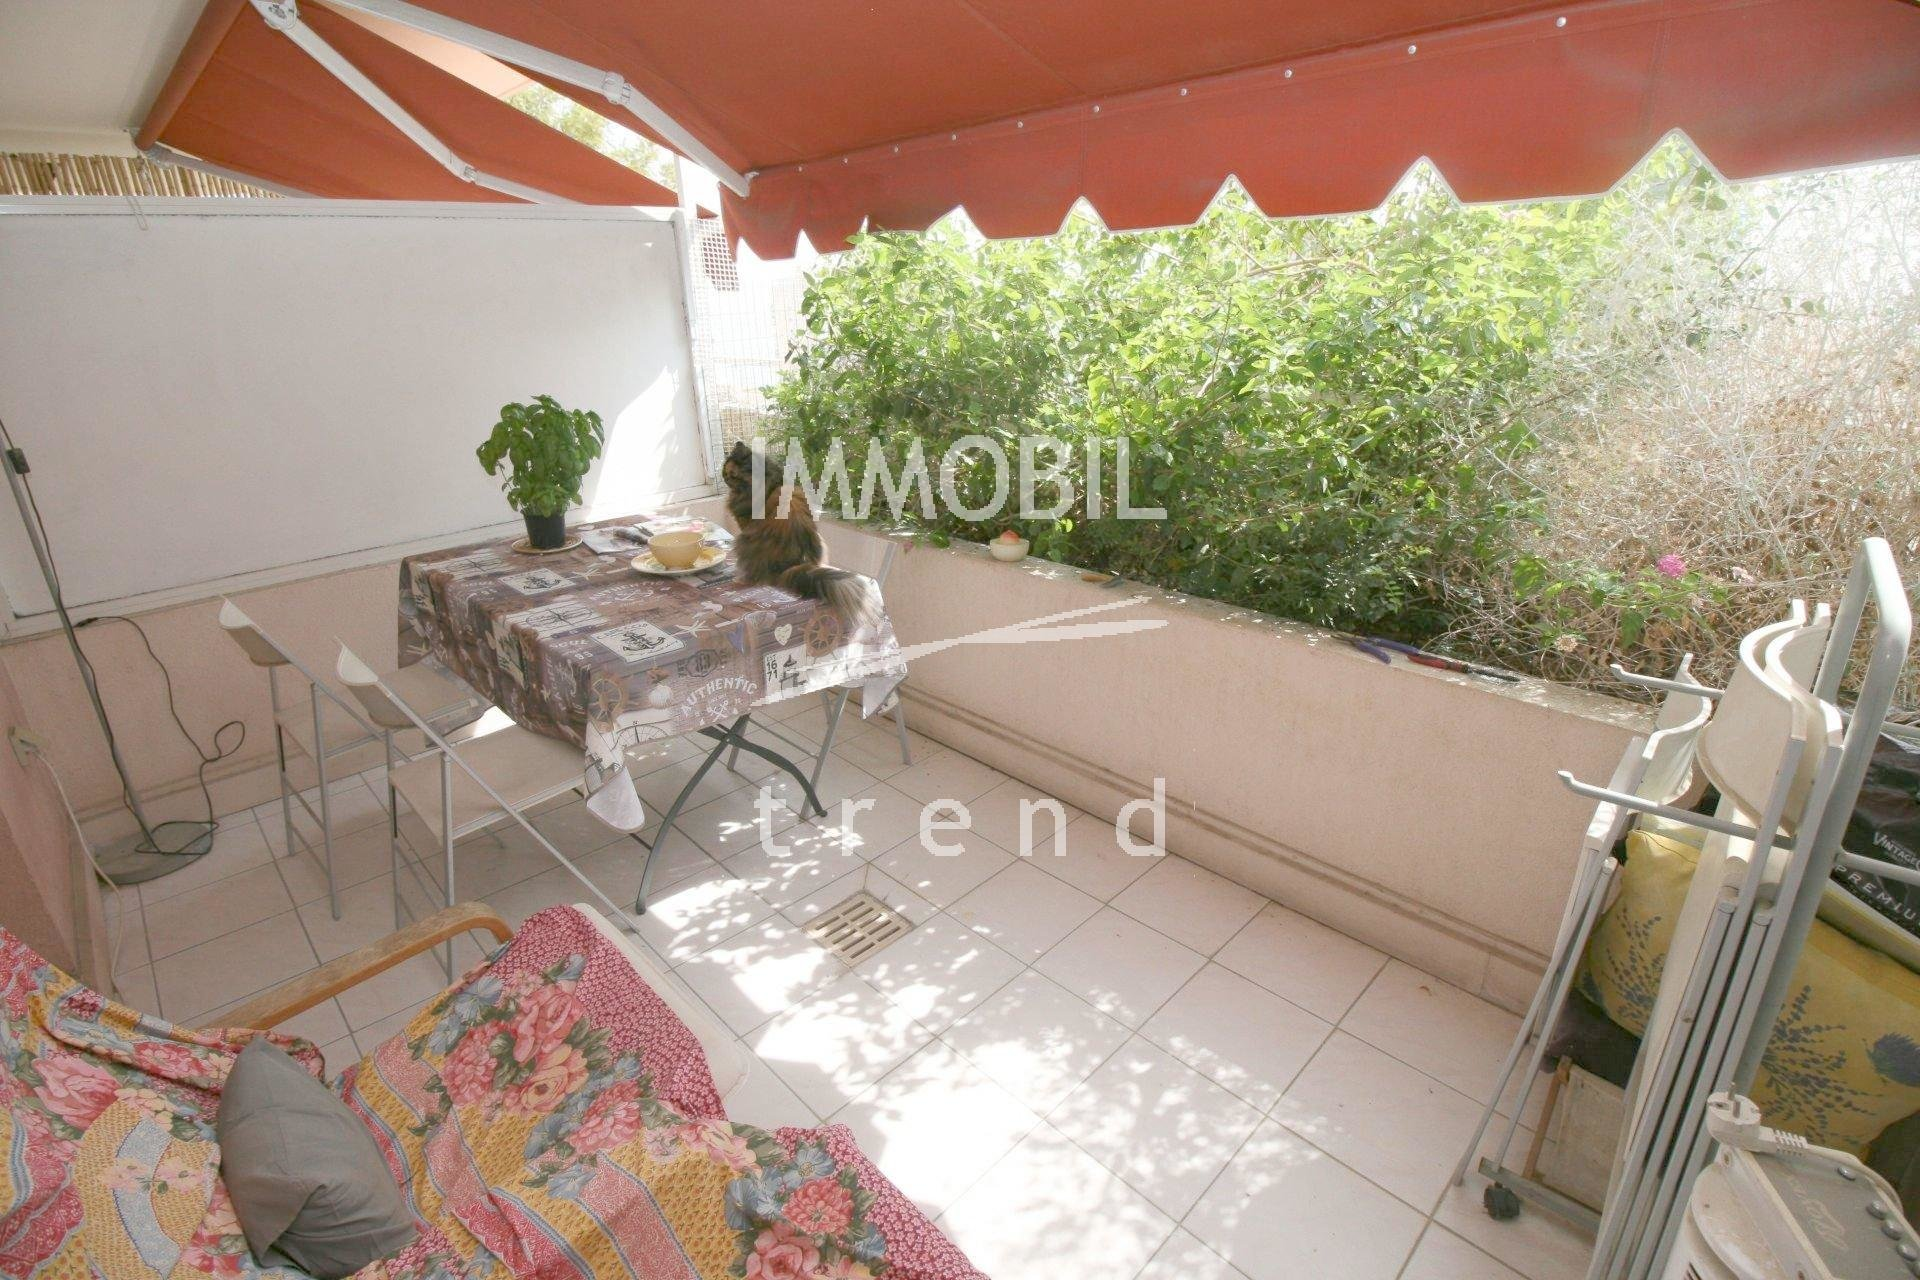 Beausoleil Real Estate | for rent furnished studio flat